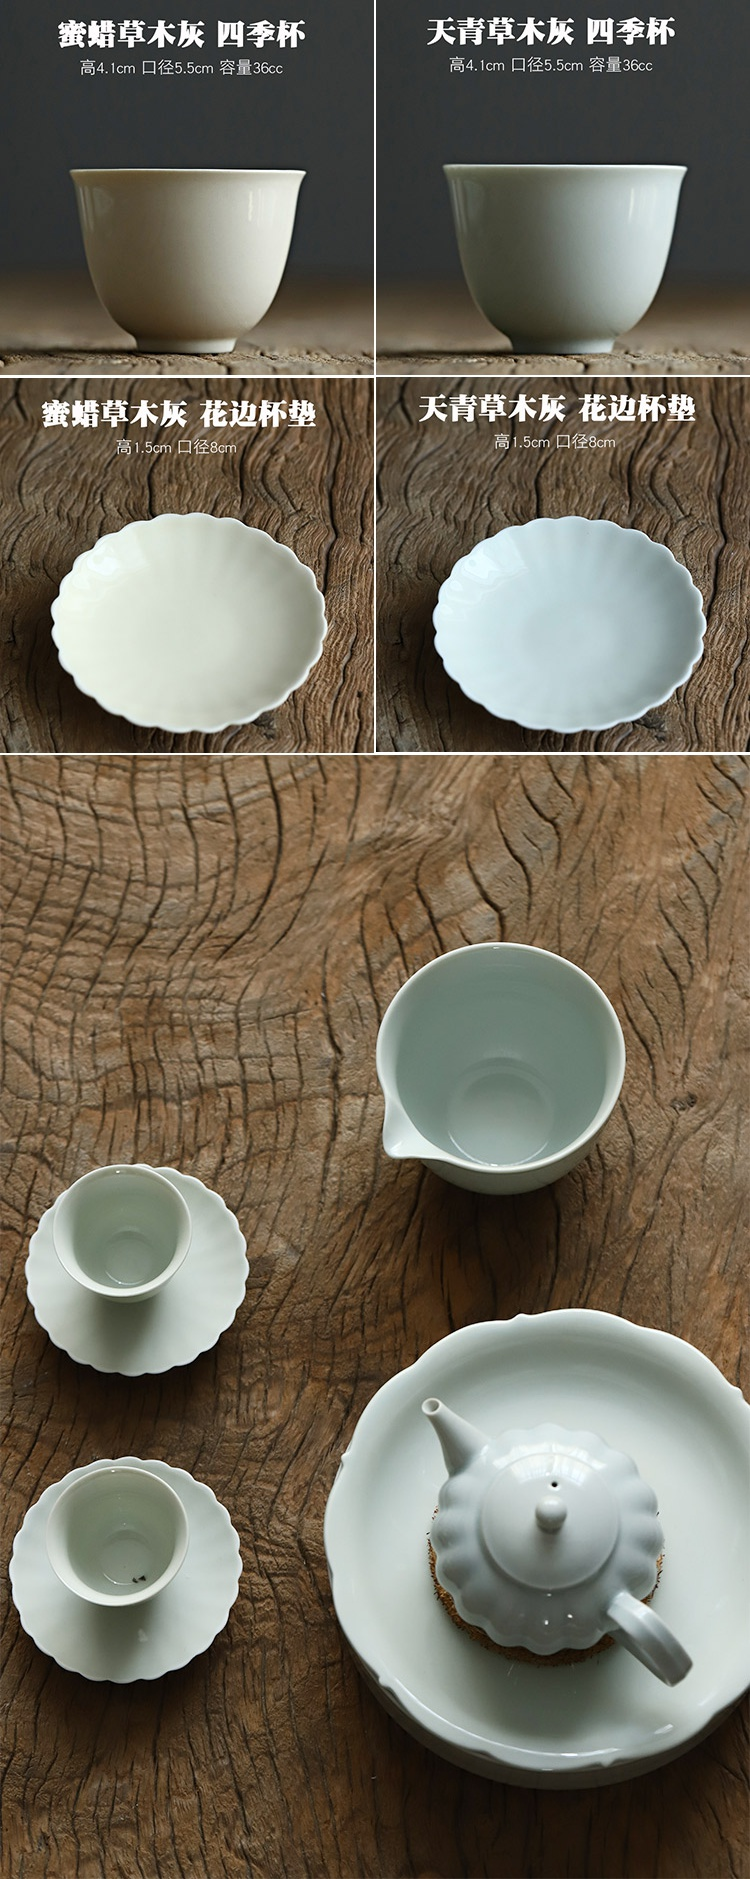 The Poly real view jingdezhen manual archaize sample tea cup kung fu masters cup small plant ash glaze ceramic cups lace